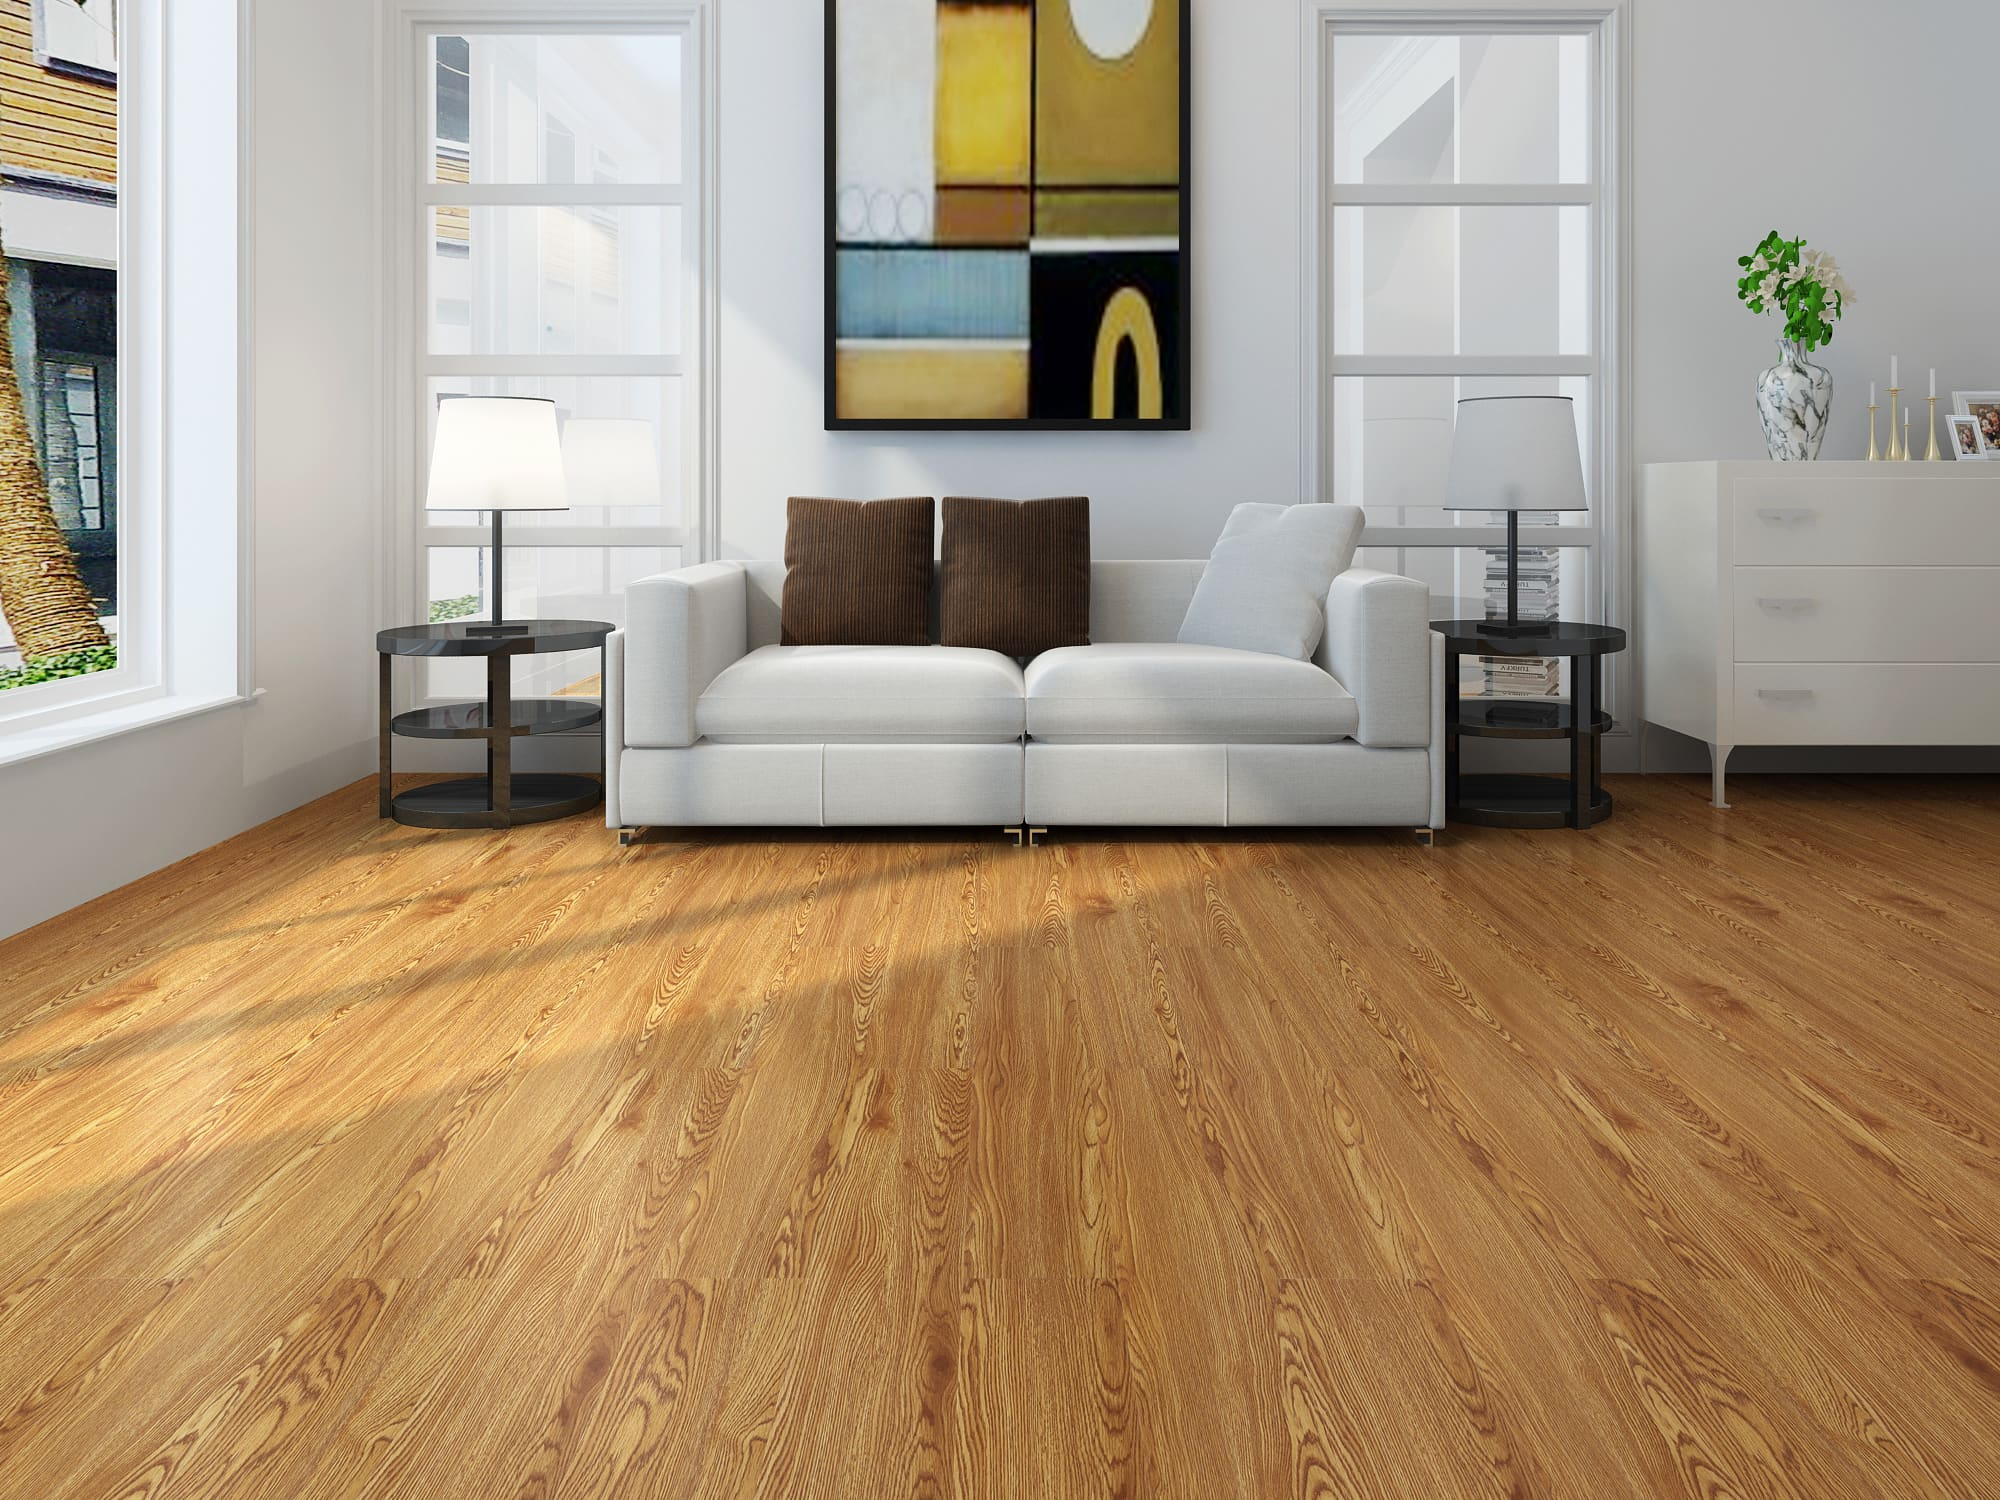 Choose Flooring Wisely For a Spectacular Effect